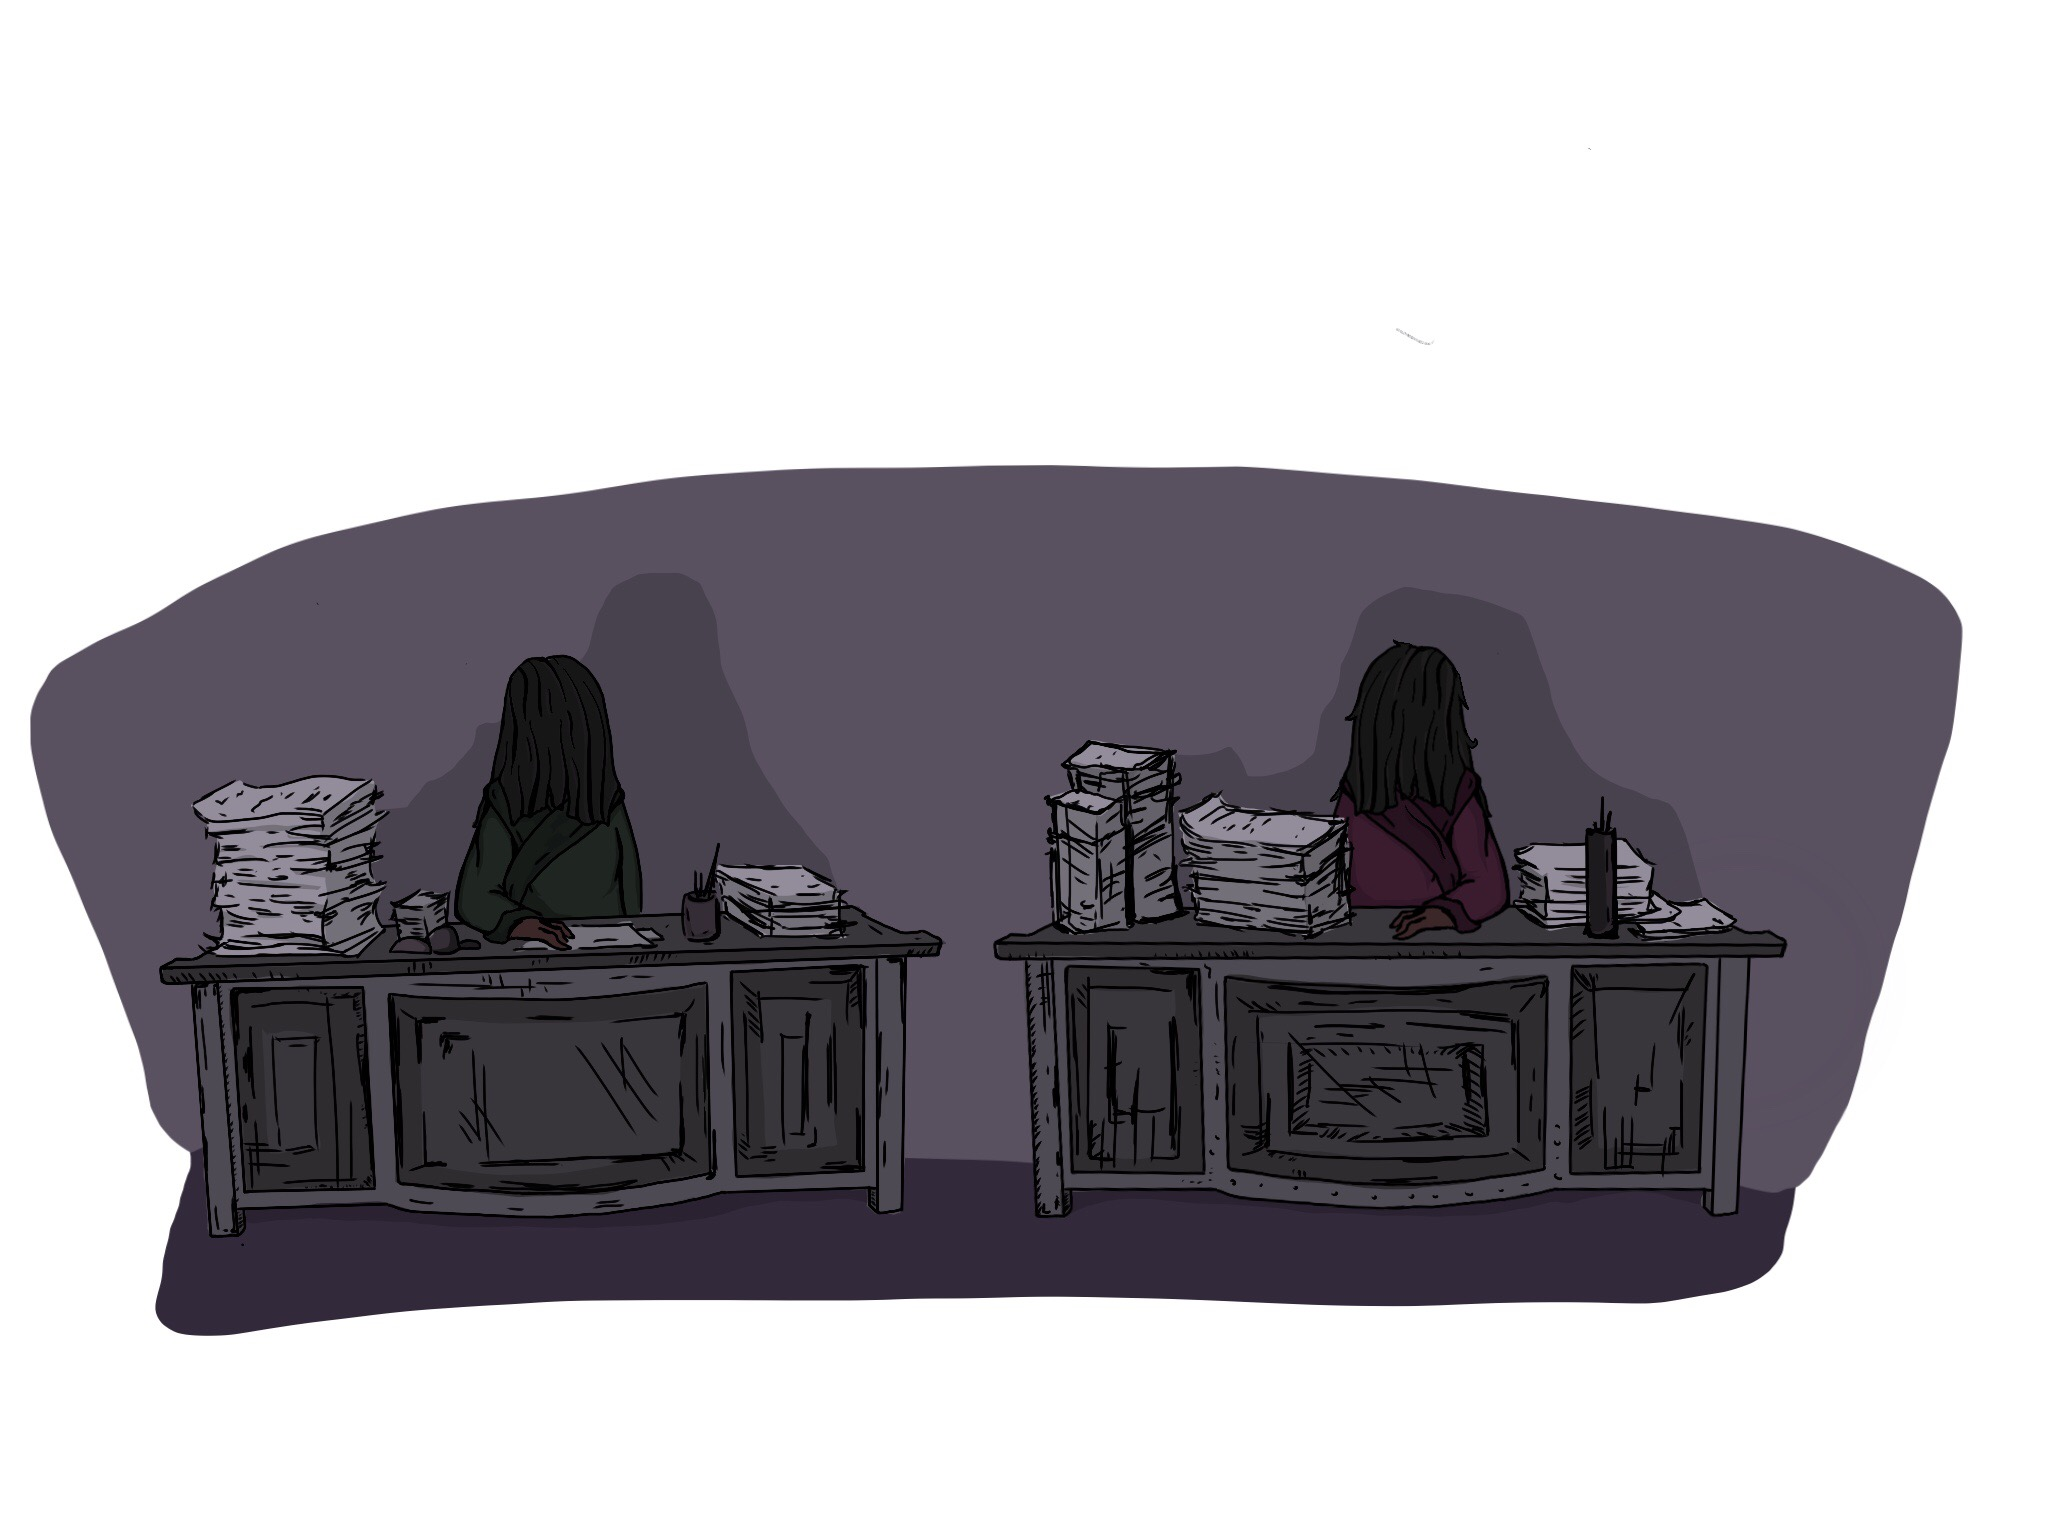 Ima  ge: The twin desks in the room faded into view, each one with a child-sized figure behind. Illustrations by Chloe Rubenstein